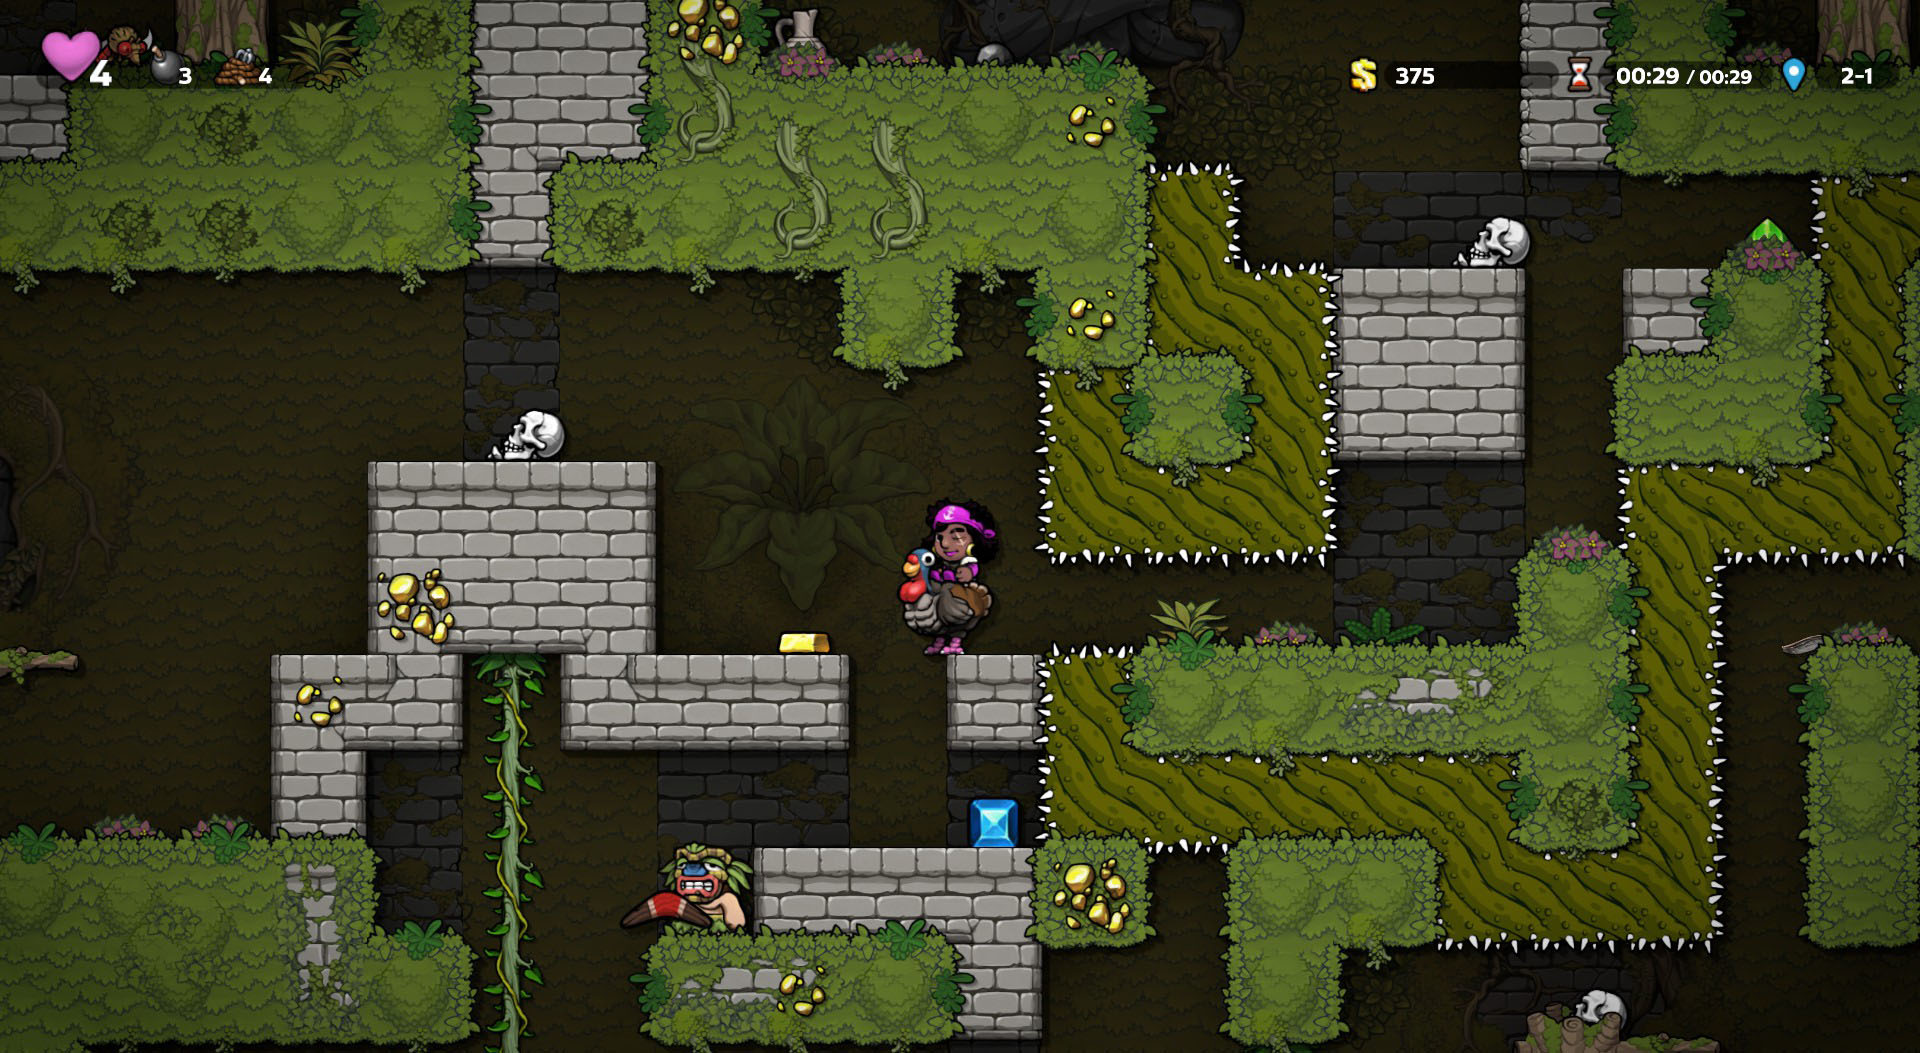 Spelunky 2 delayed beyond 2019